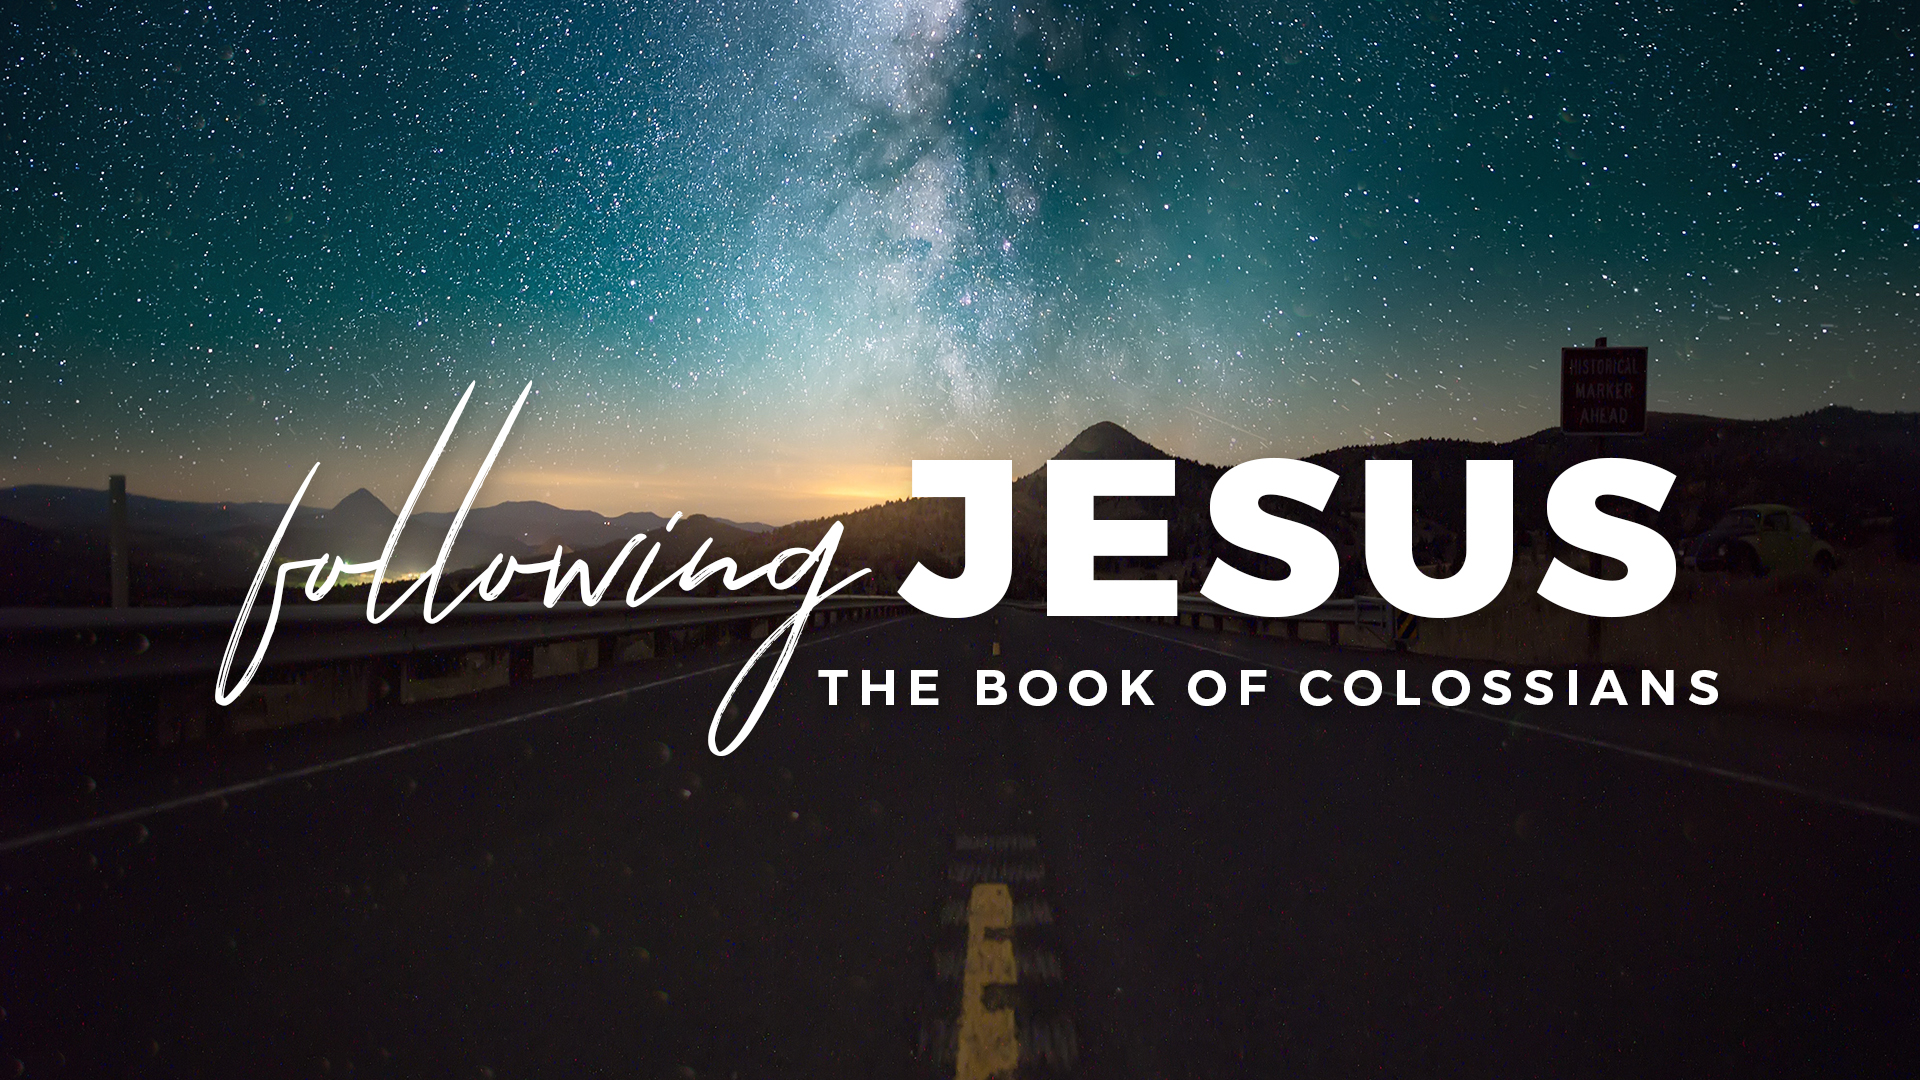 Following Jesus: The Book of Colossians - May 13 - June 3, 2018